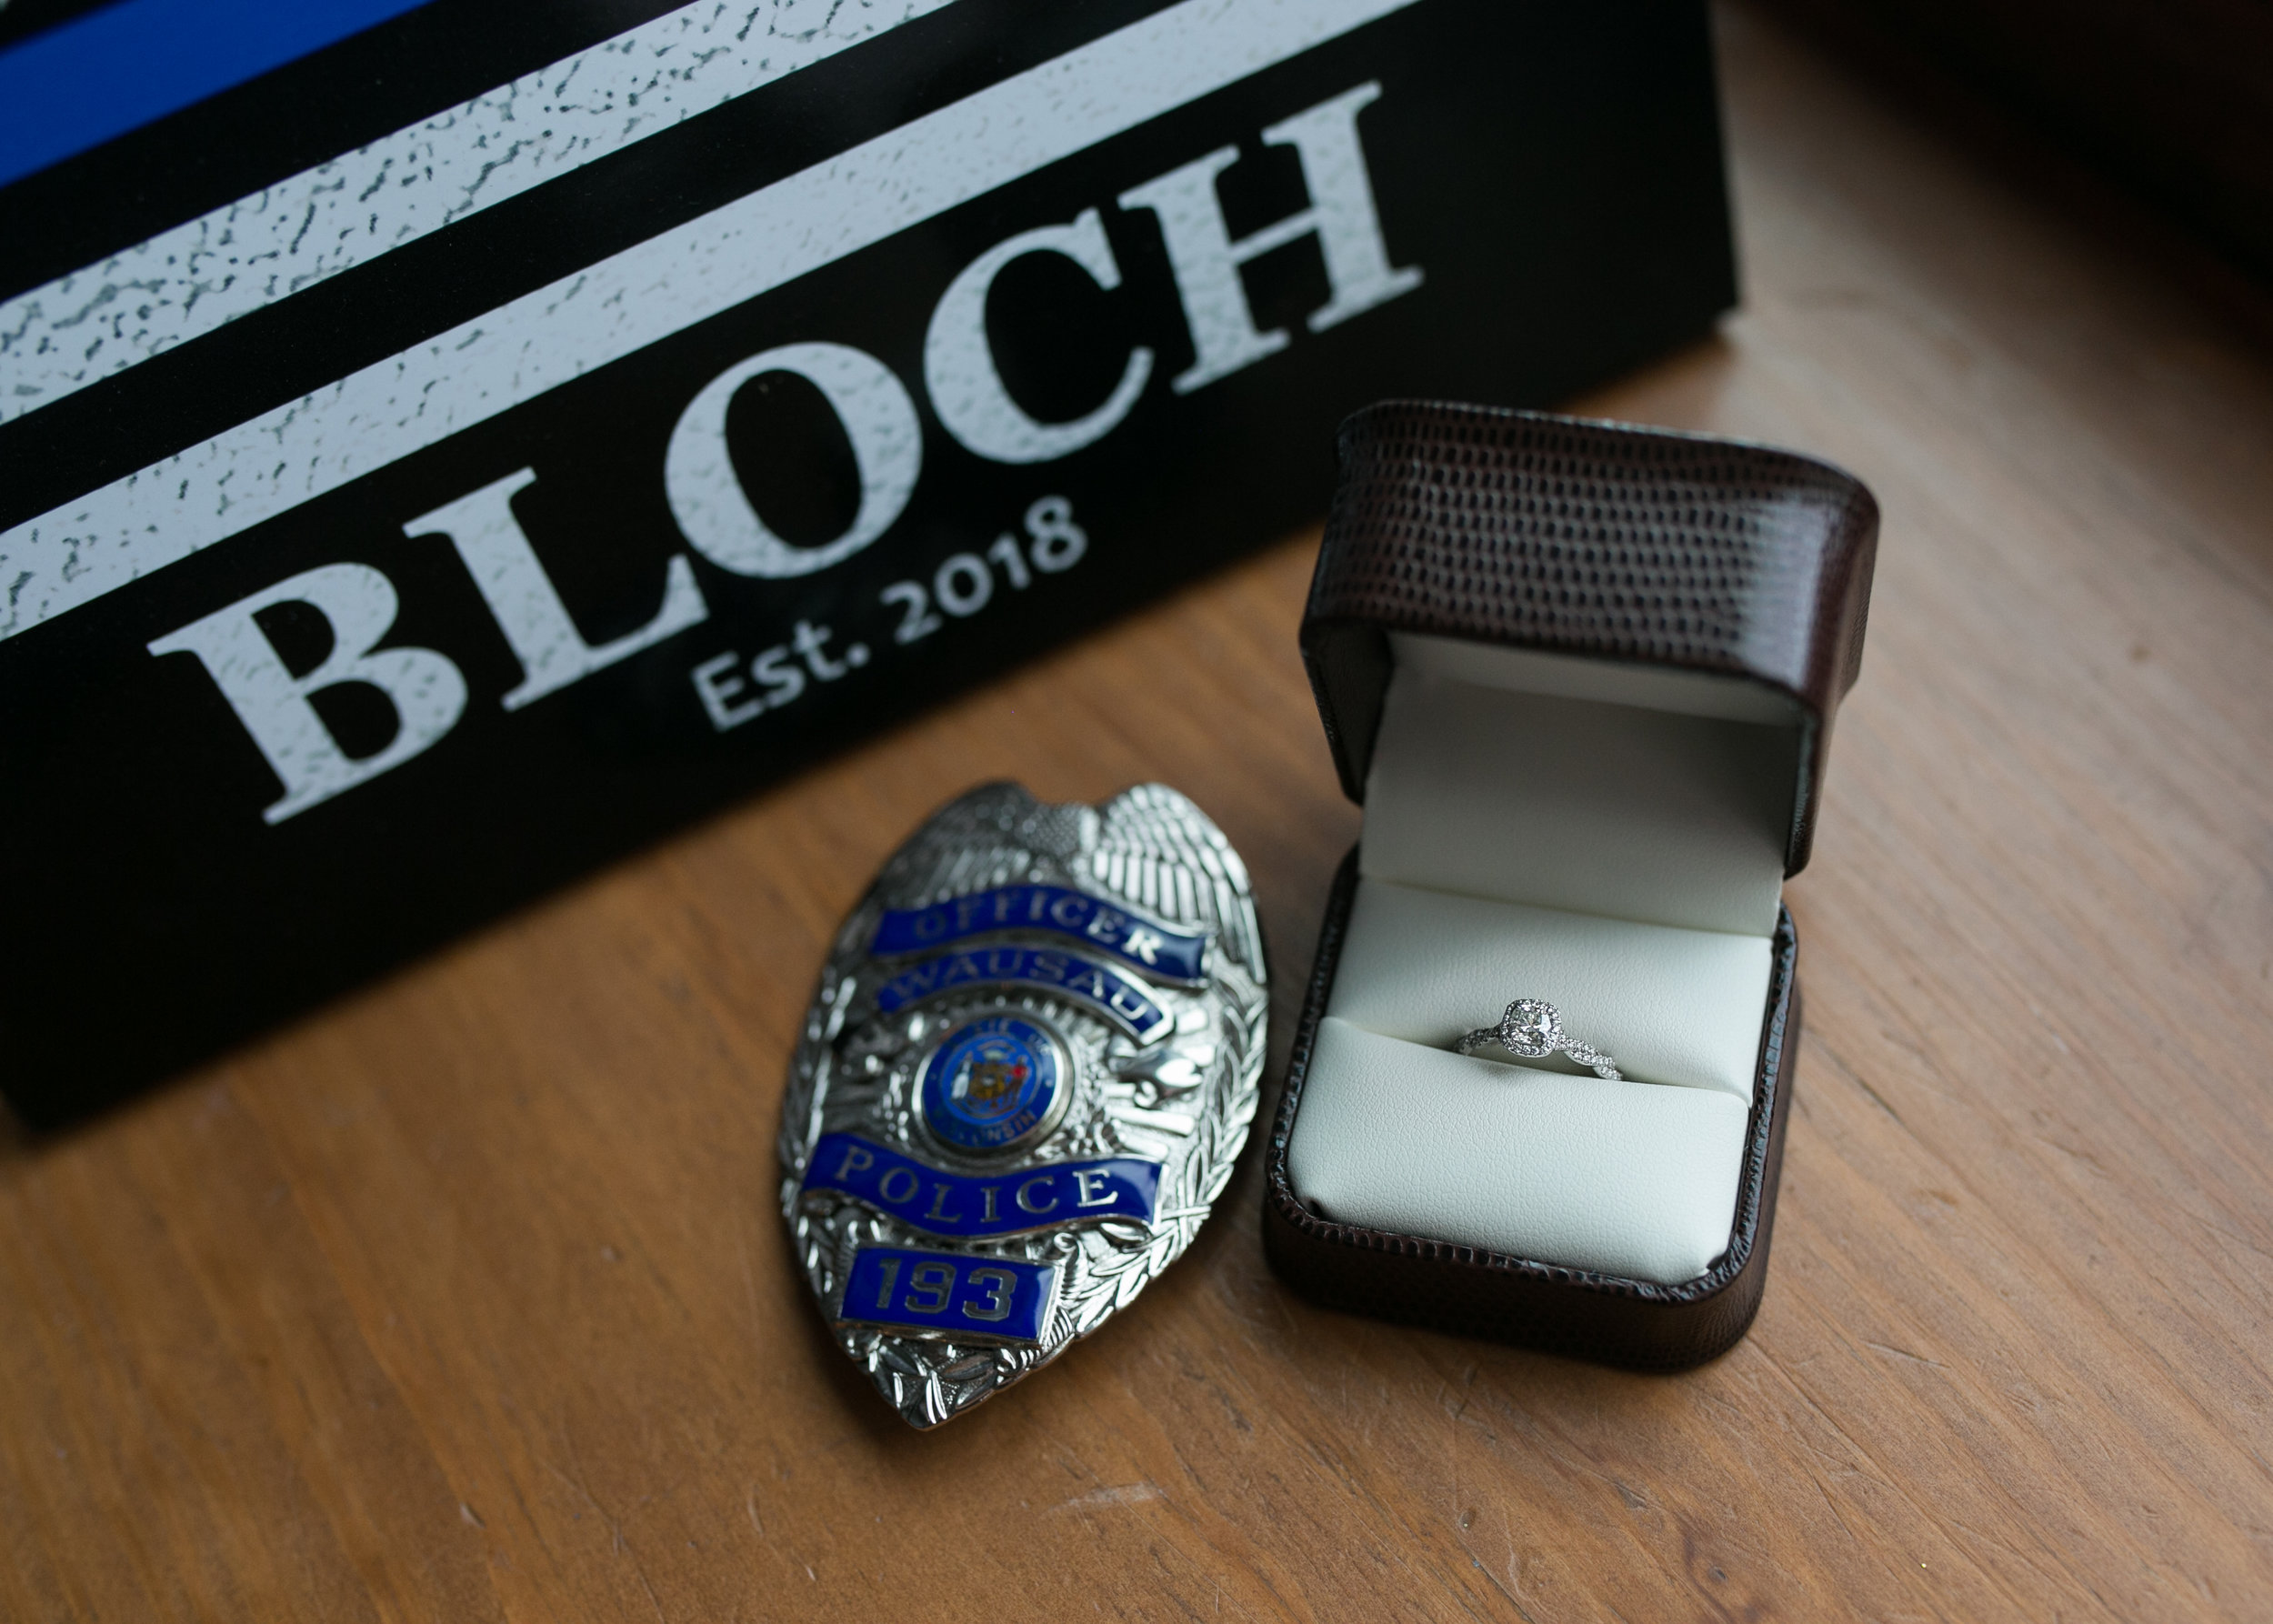 Wausau police officer gets engaged